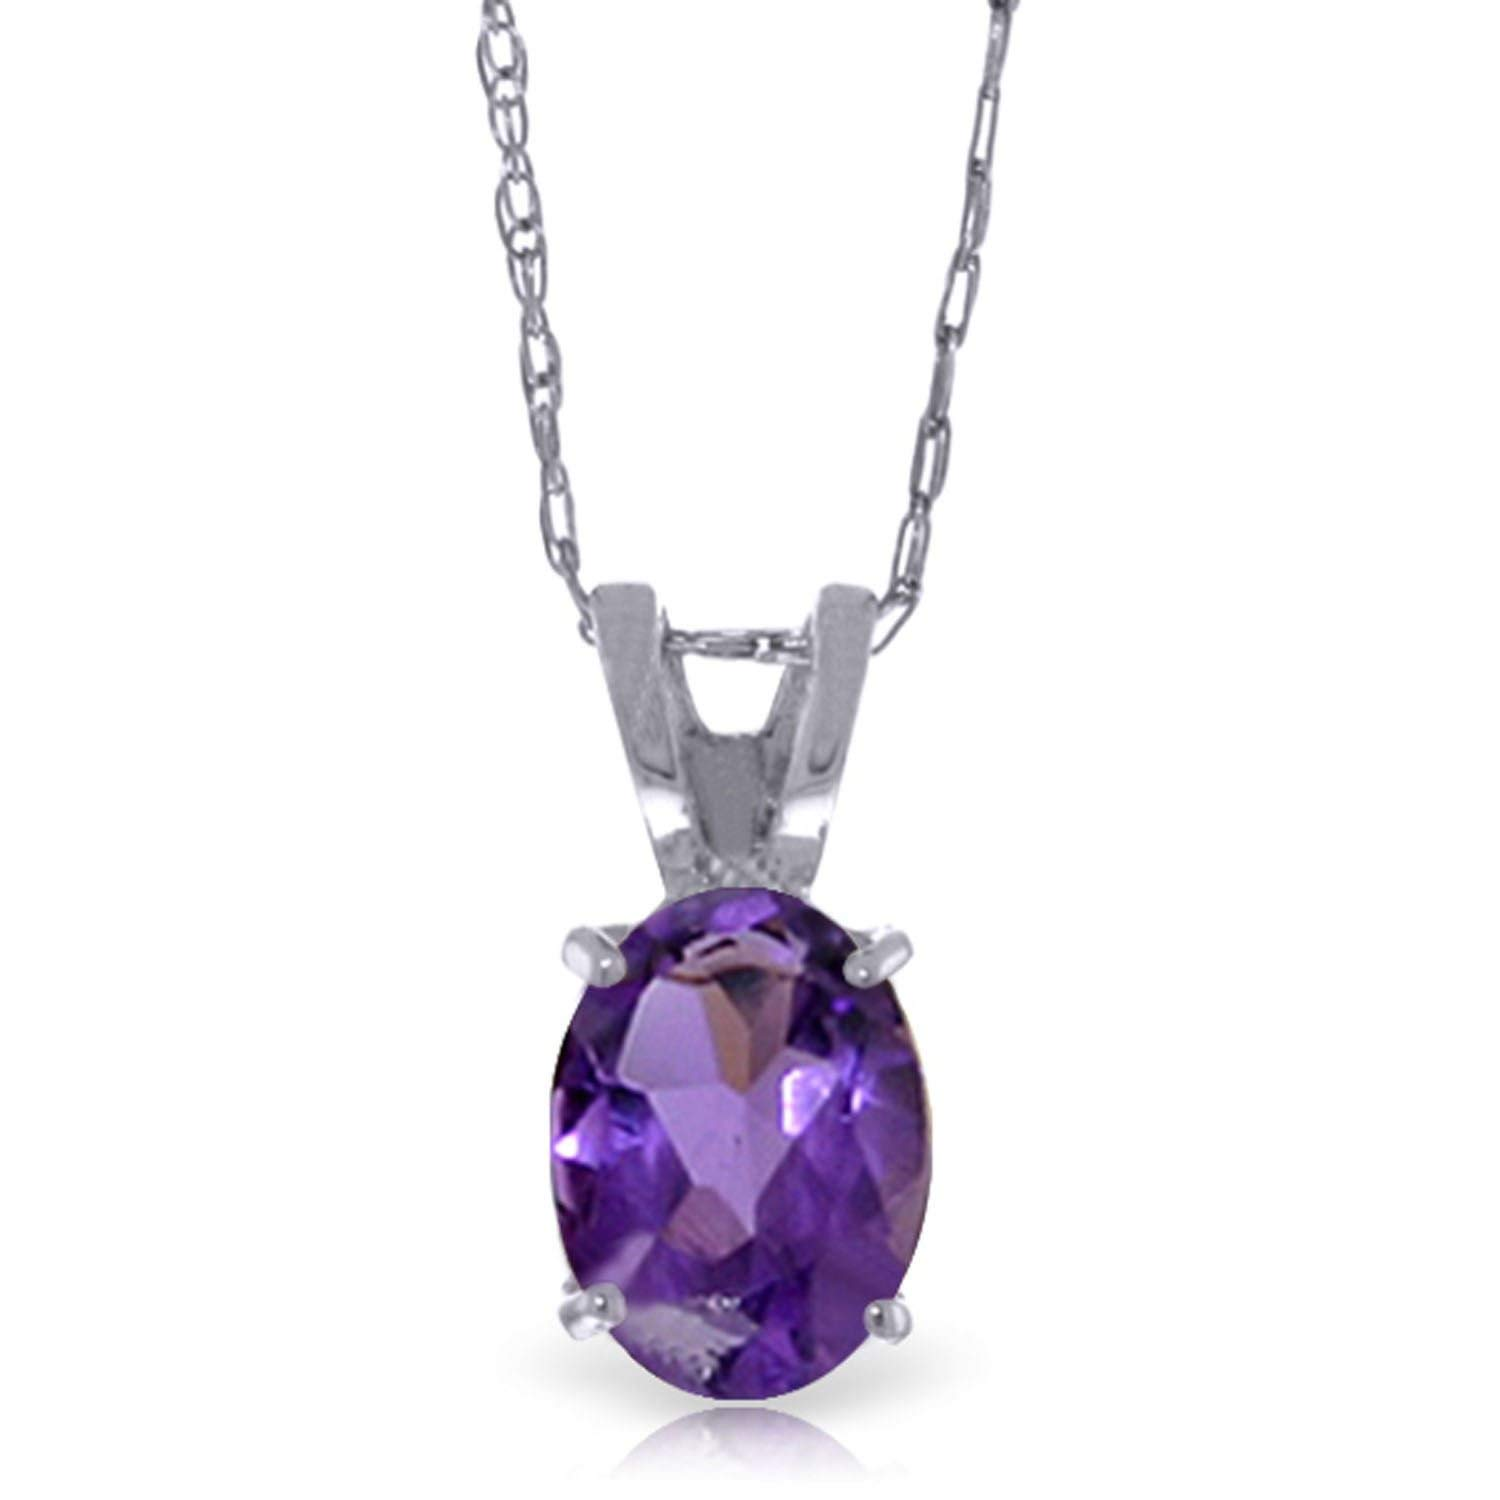 ALARRI 3.65 Carat 14K Solid White Gold Fleurs Rustique Amethyst Pearl Necklace with 22 Inch Chain Length